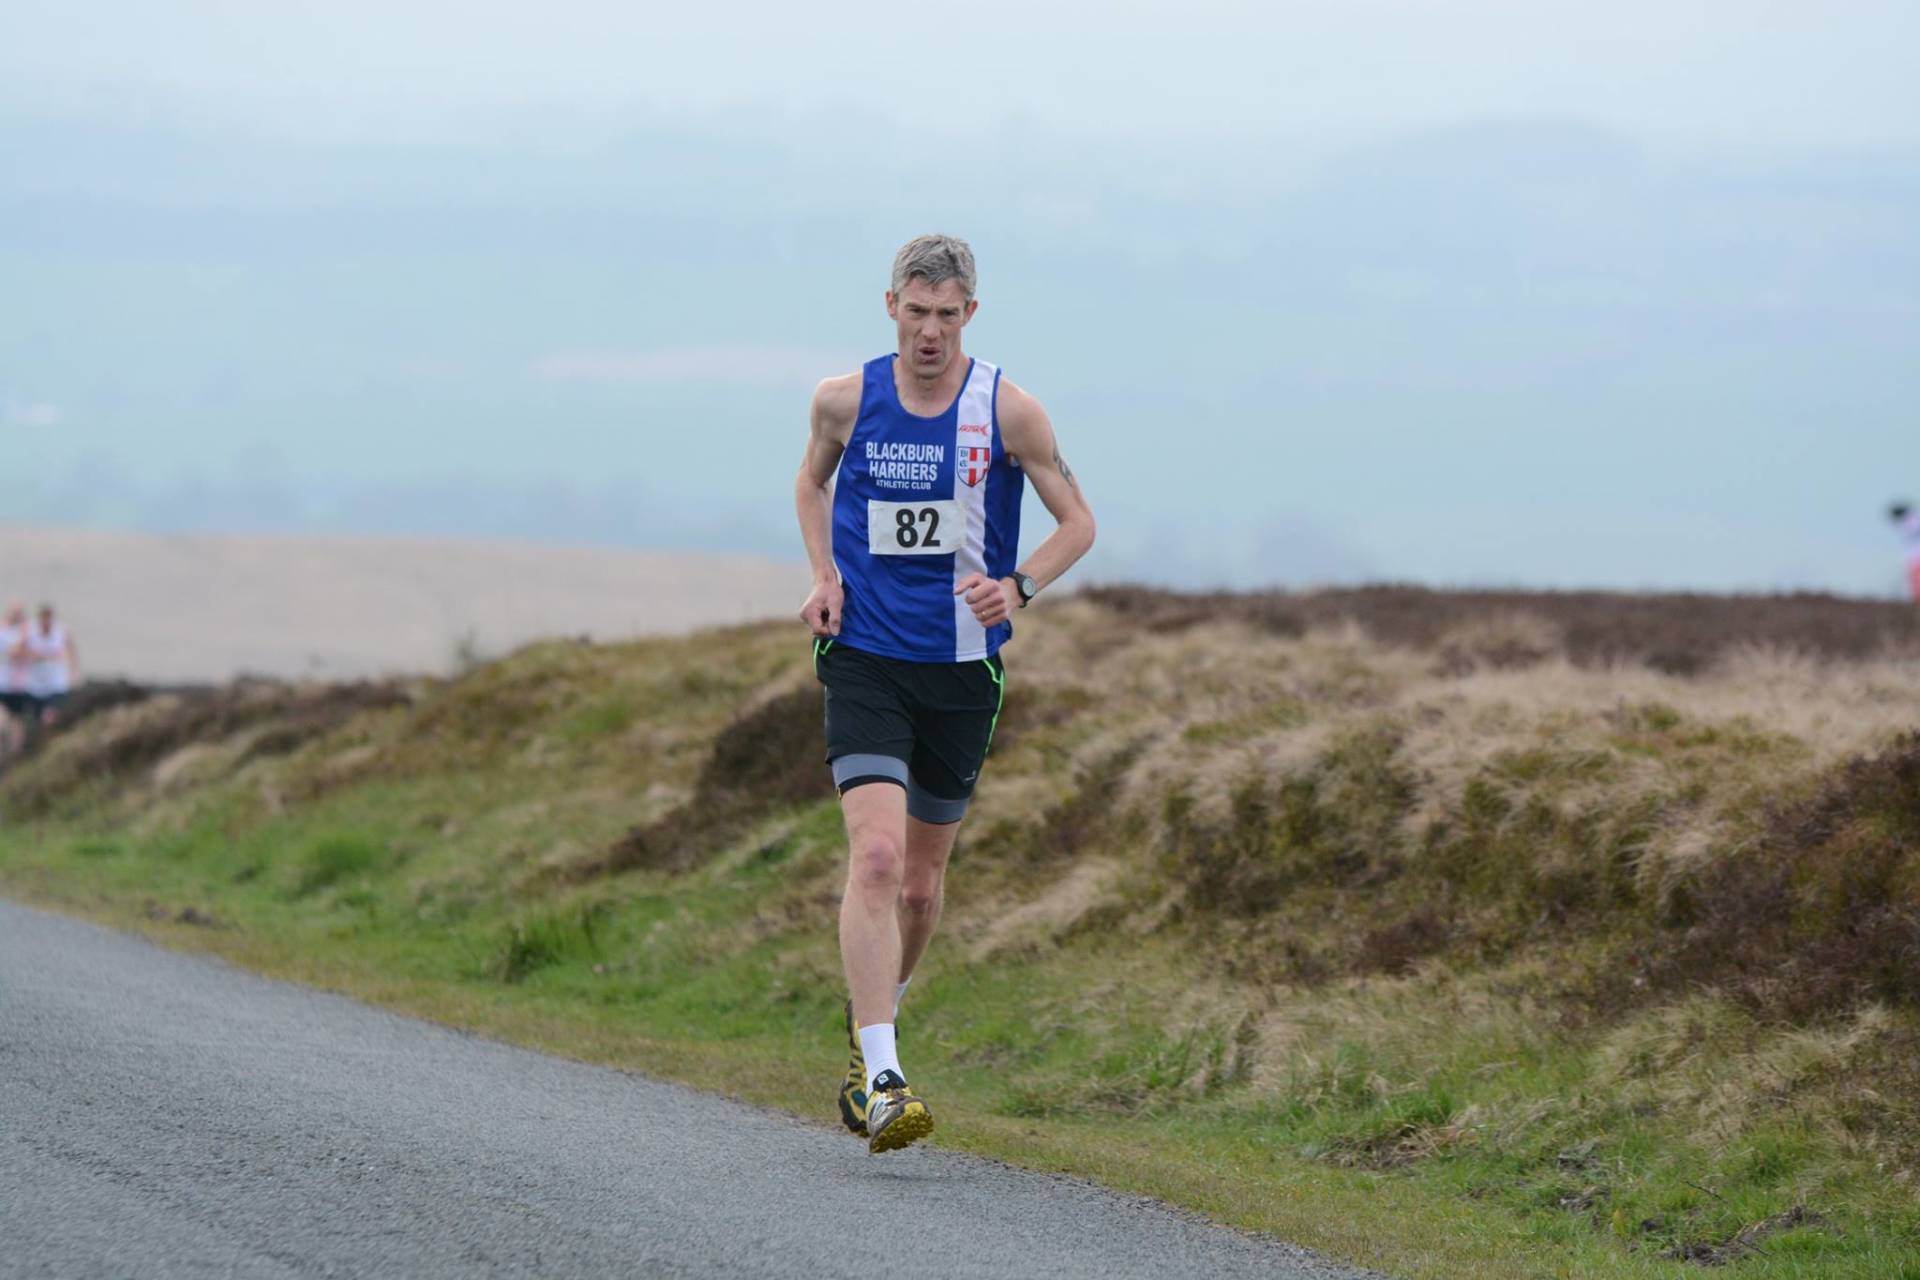 Pinhaw Moor to Coniston via Stratford for the Harriers